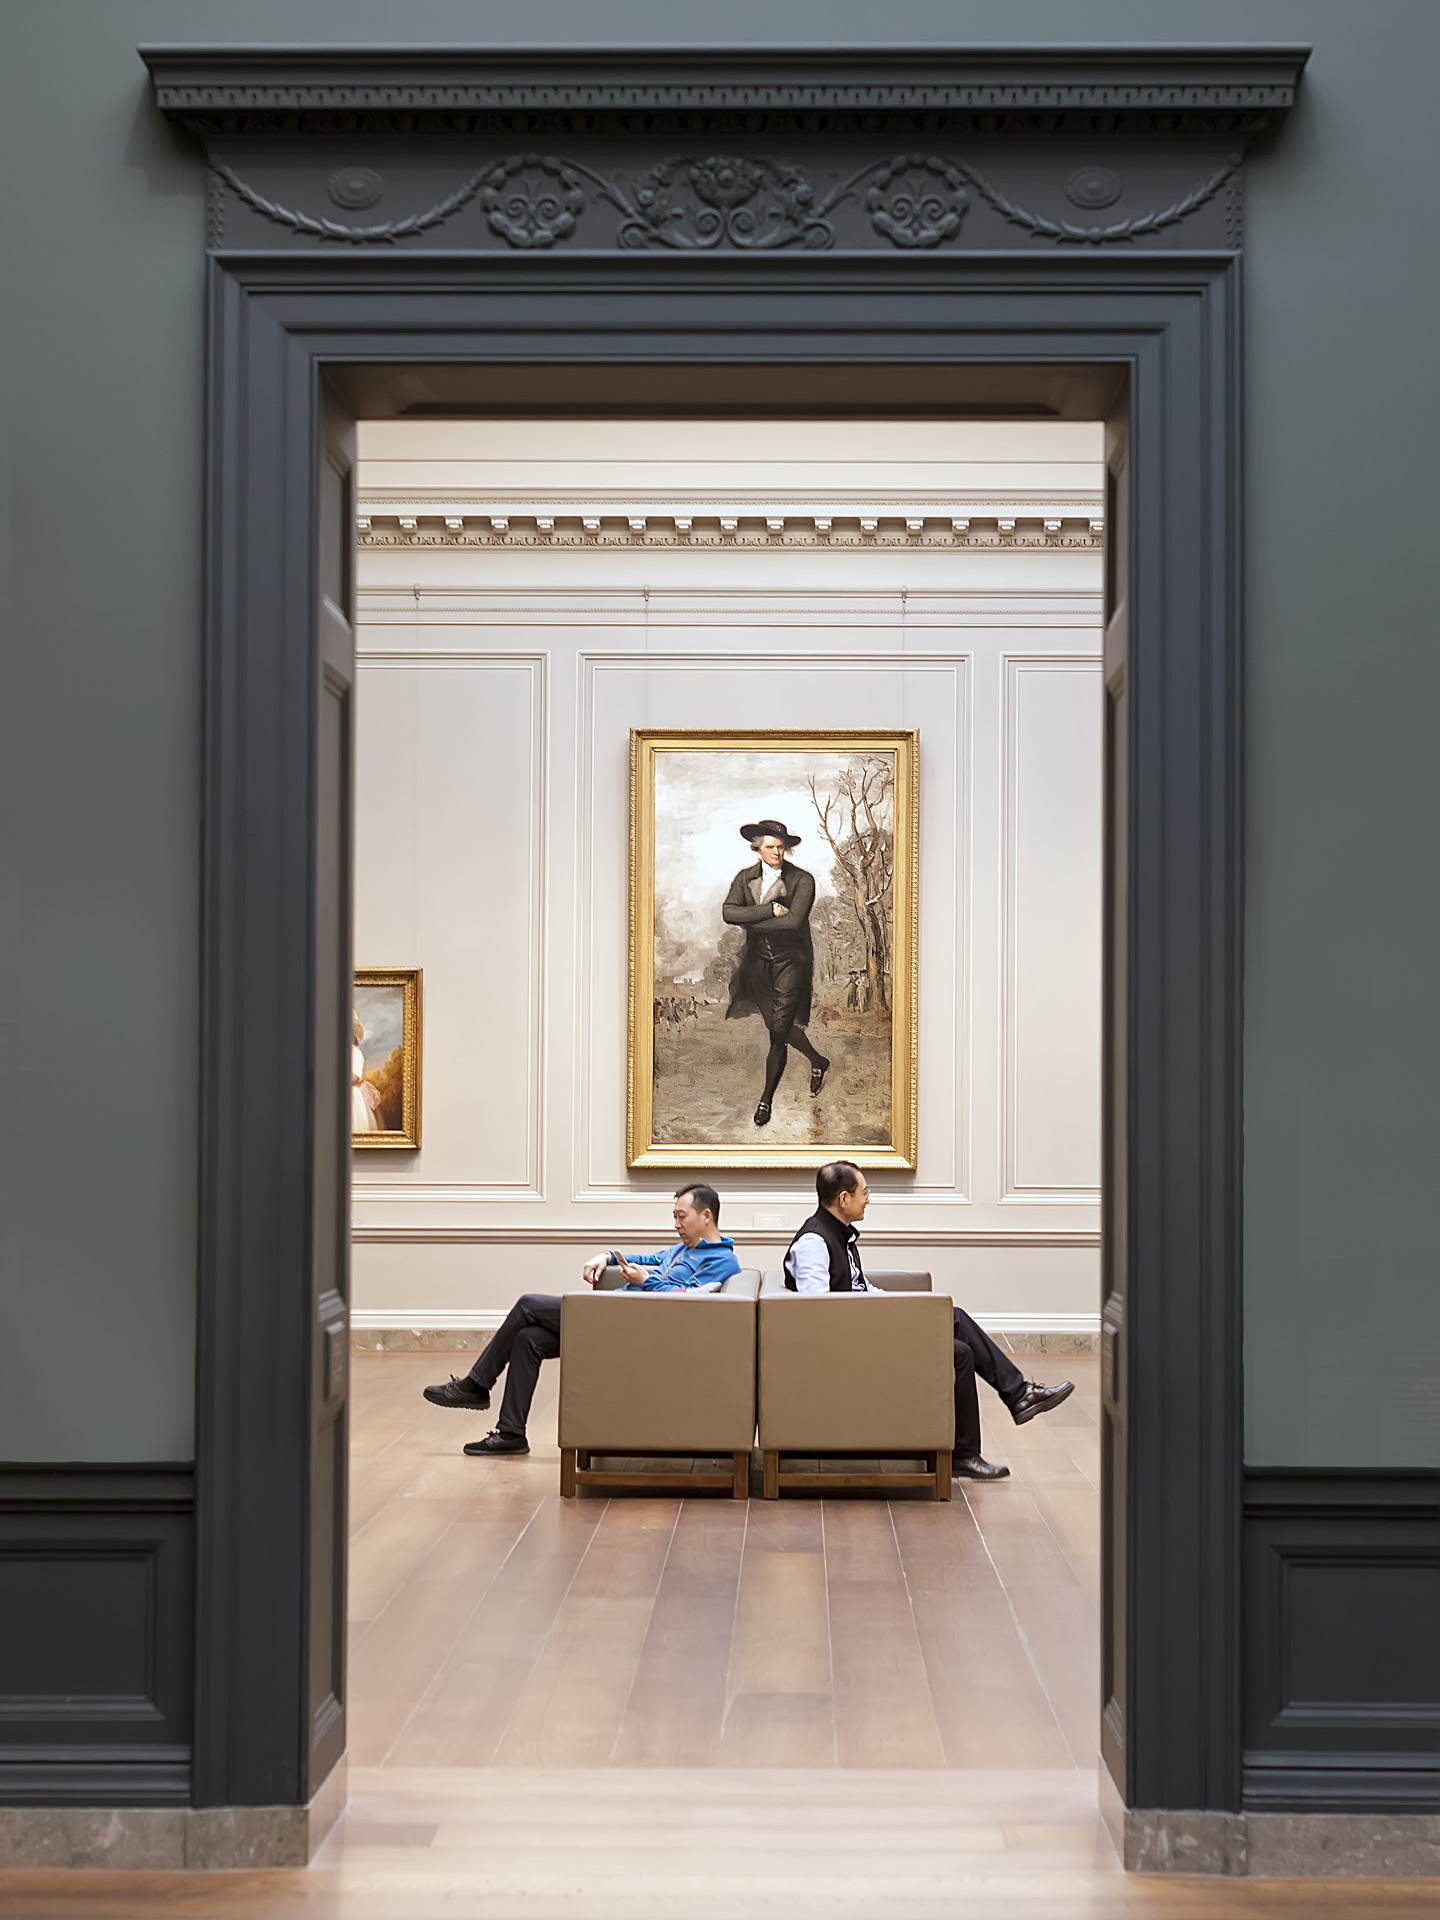 National Gallery of Art, December 2017   Gary Anthes  Archival Photograph  $300 (Framed)   Click here to inquire.